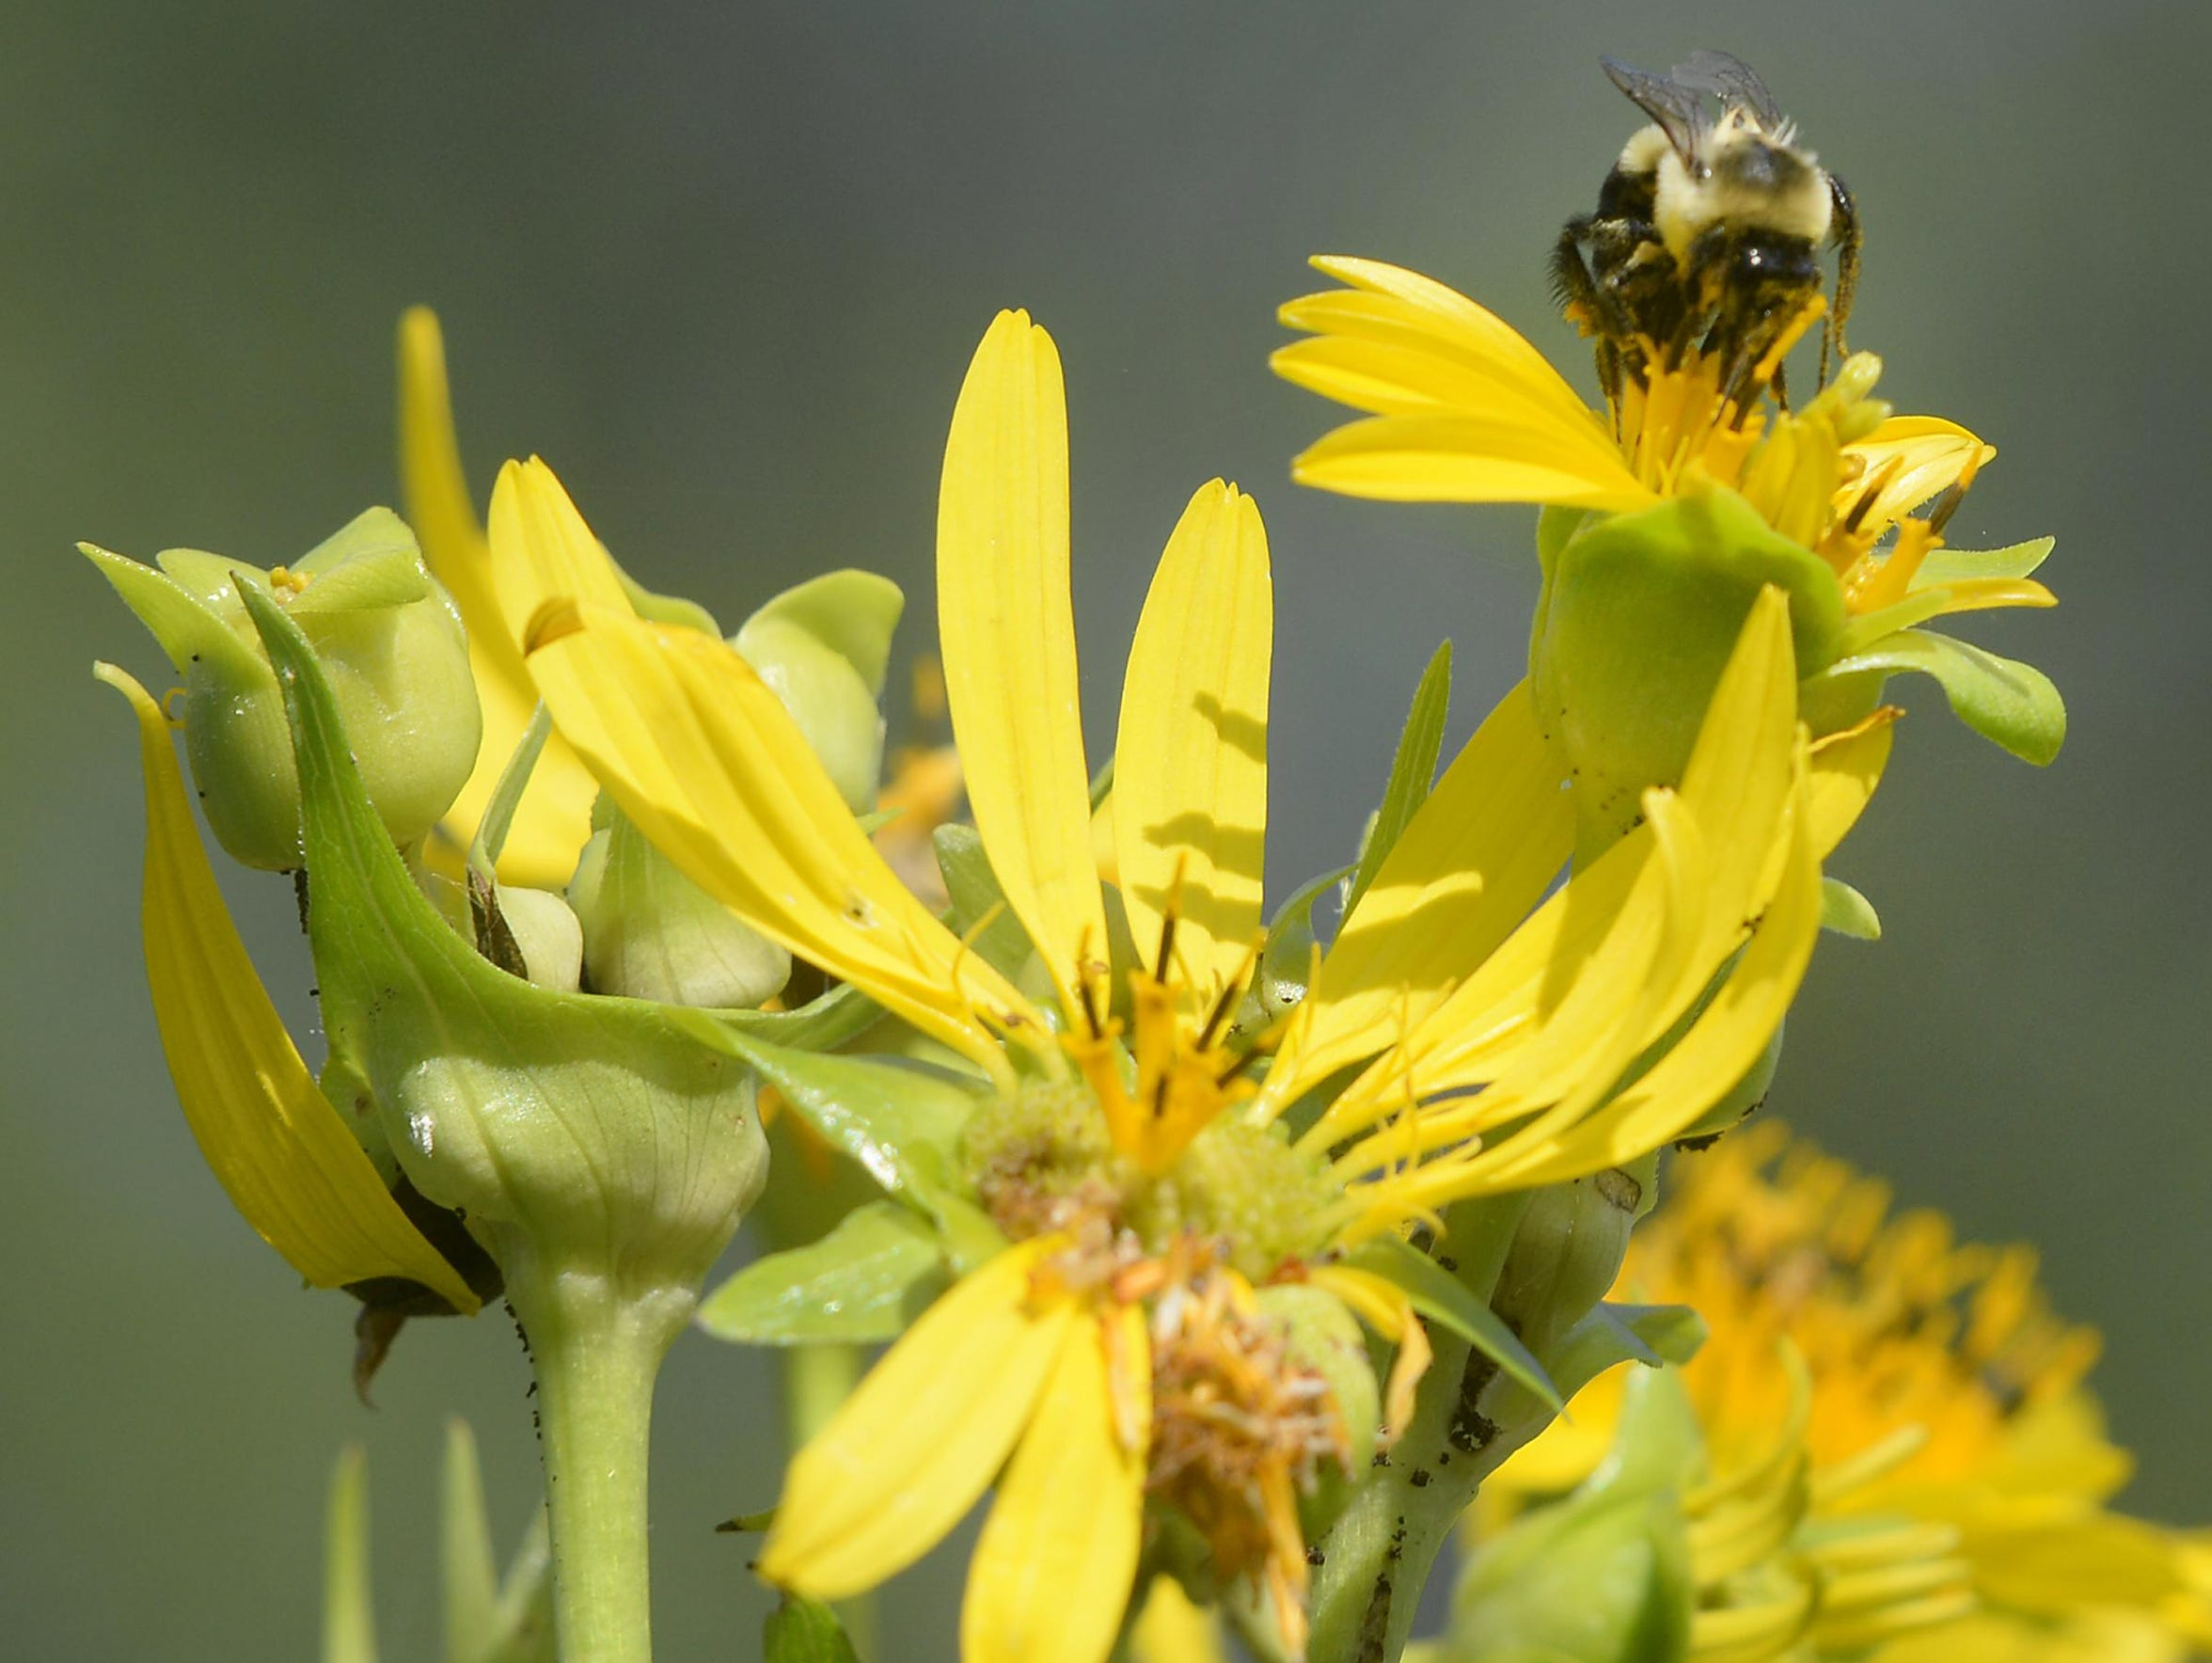 Bees are everywhere carrying out their duties at the